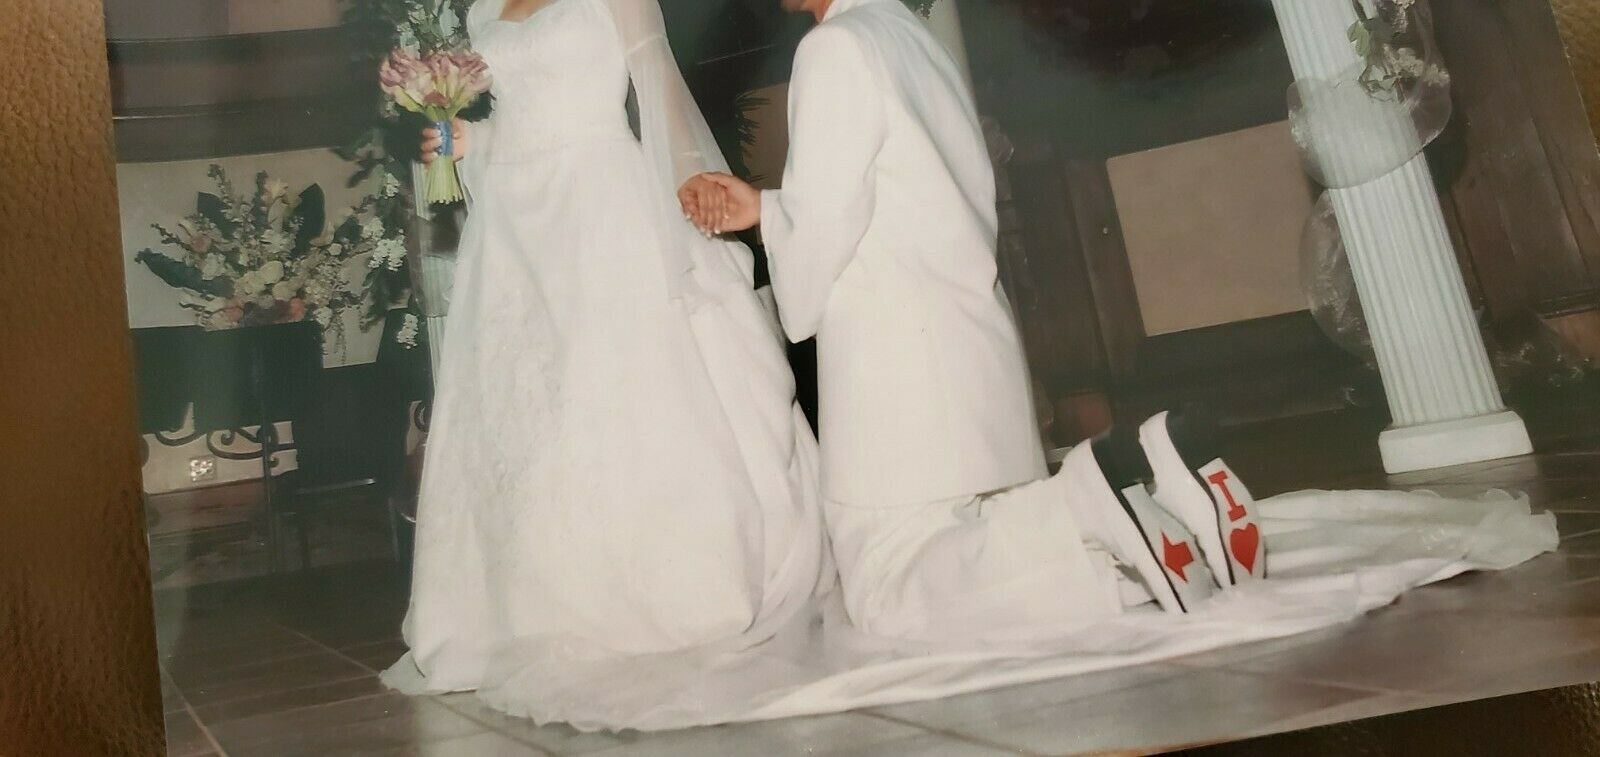 Wedding gown, white, bell sleeves, long train, organza, embellished, sz 8 dress